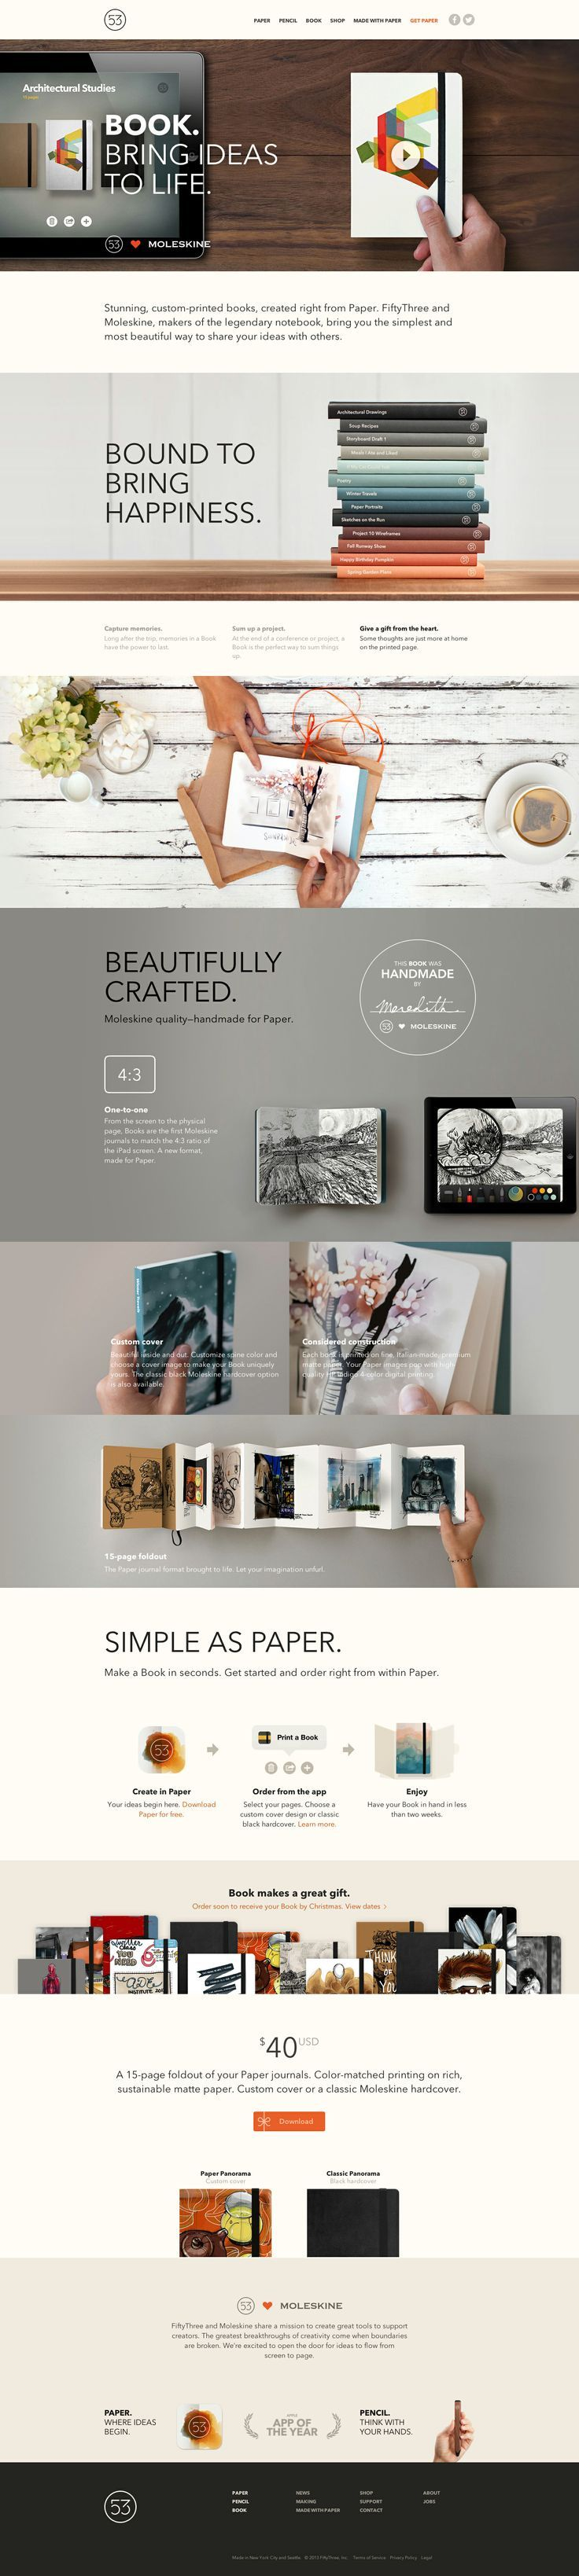 Incredible web design layout and color palette selected. I really like this homepage - whatever web designer created this would definitely have a job at Isadora Design. #webdesign #book